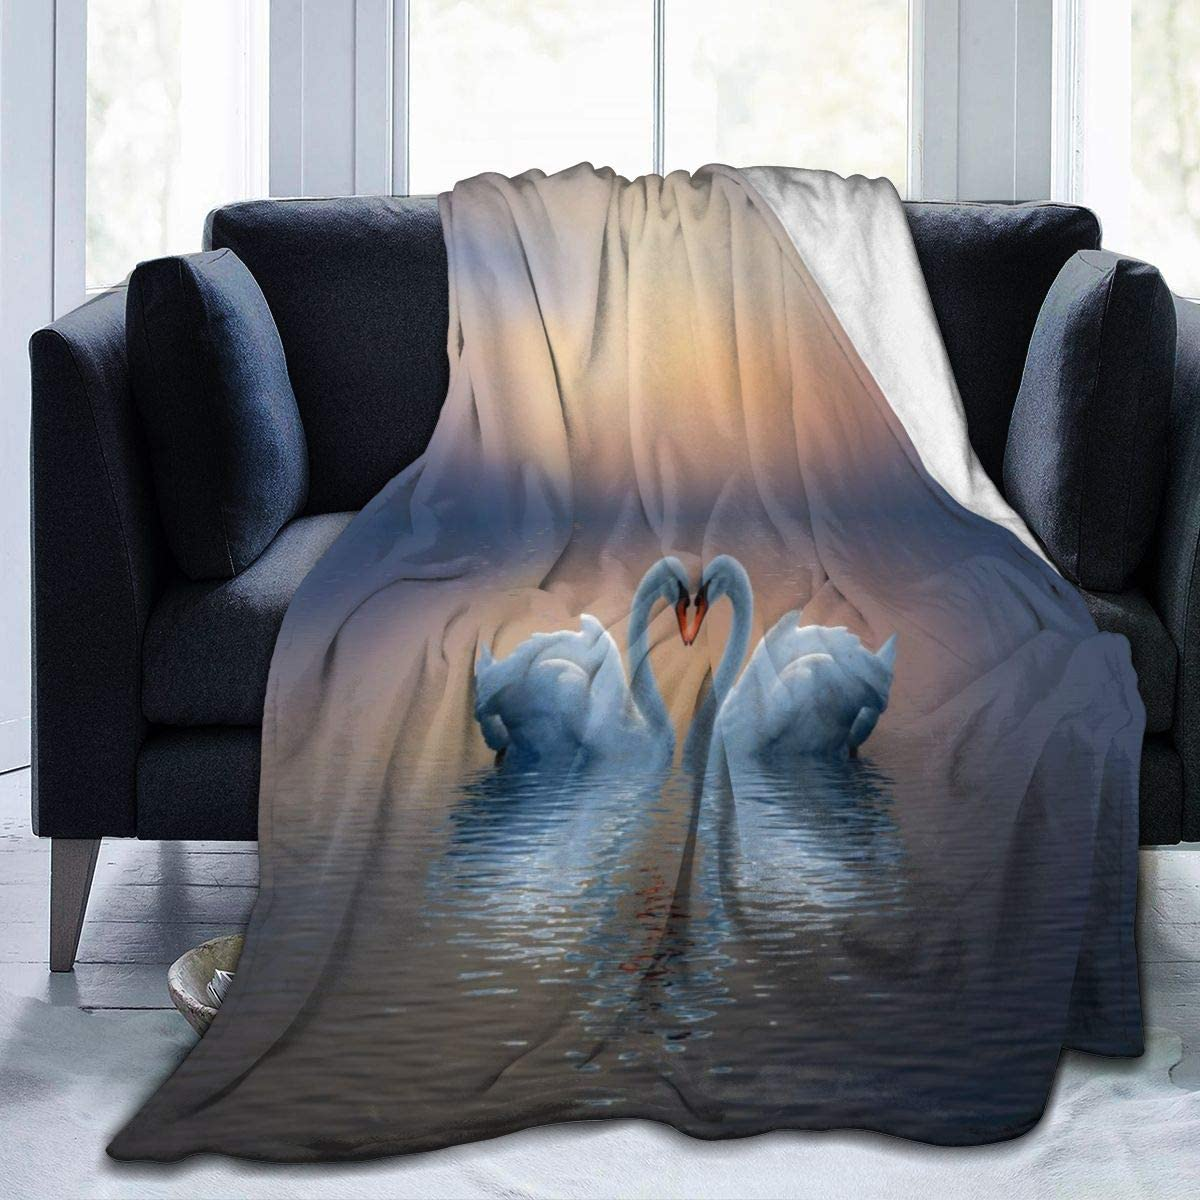 blankets-for-adult-beds